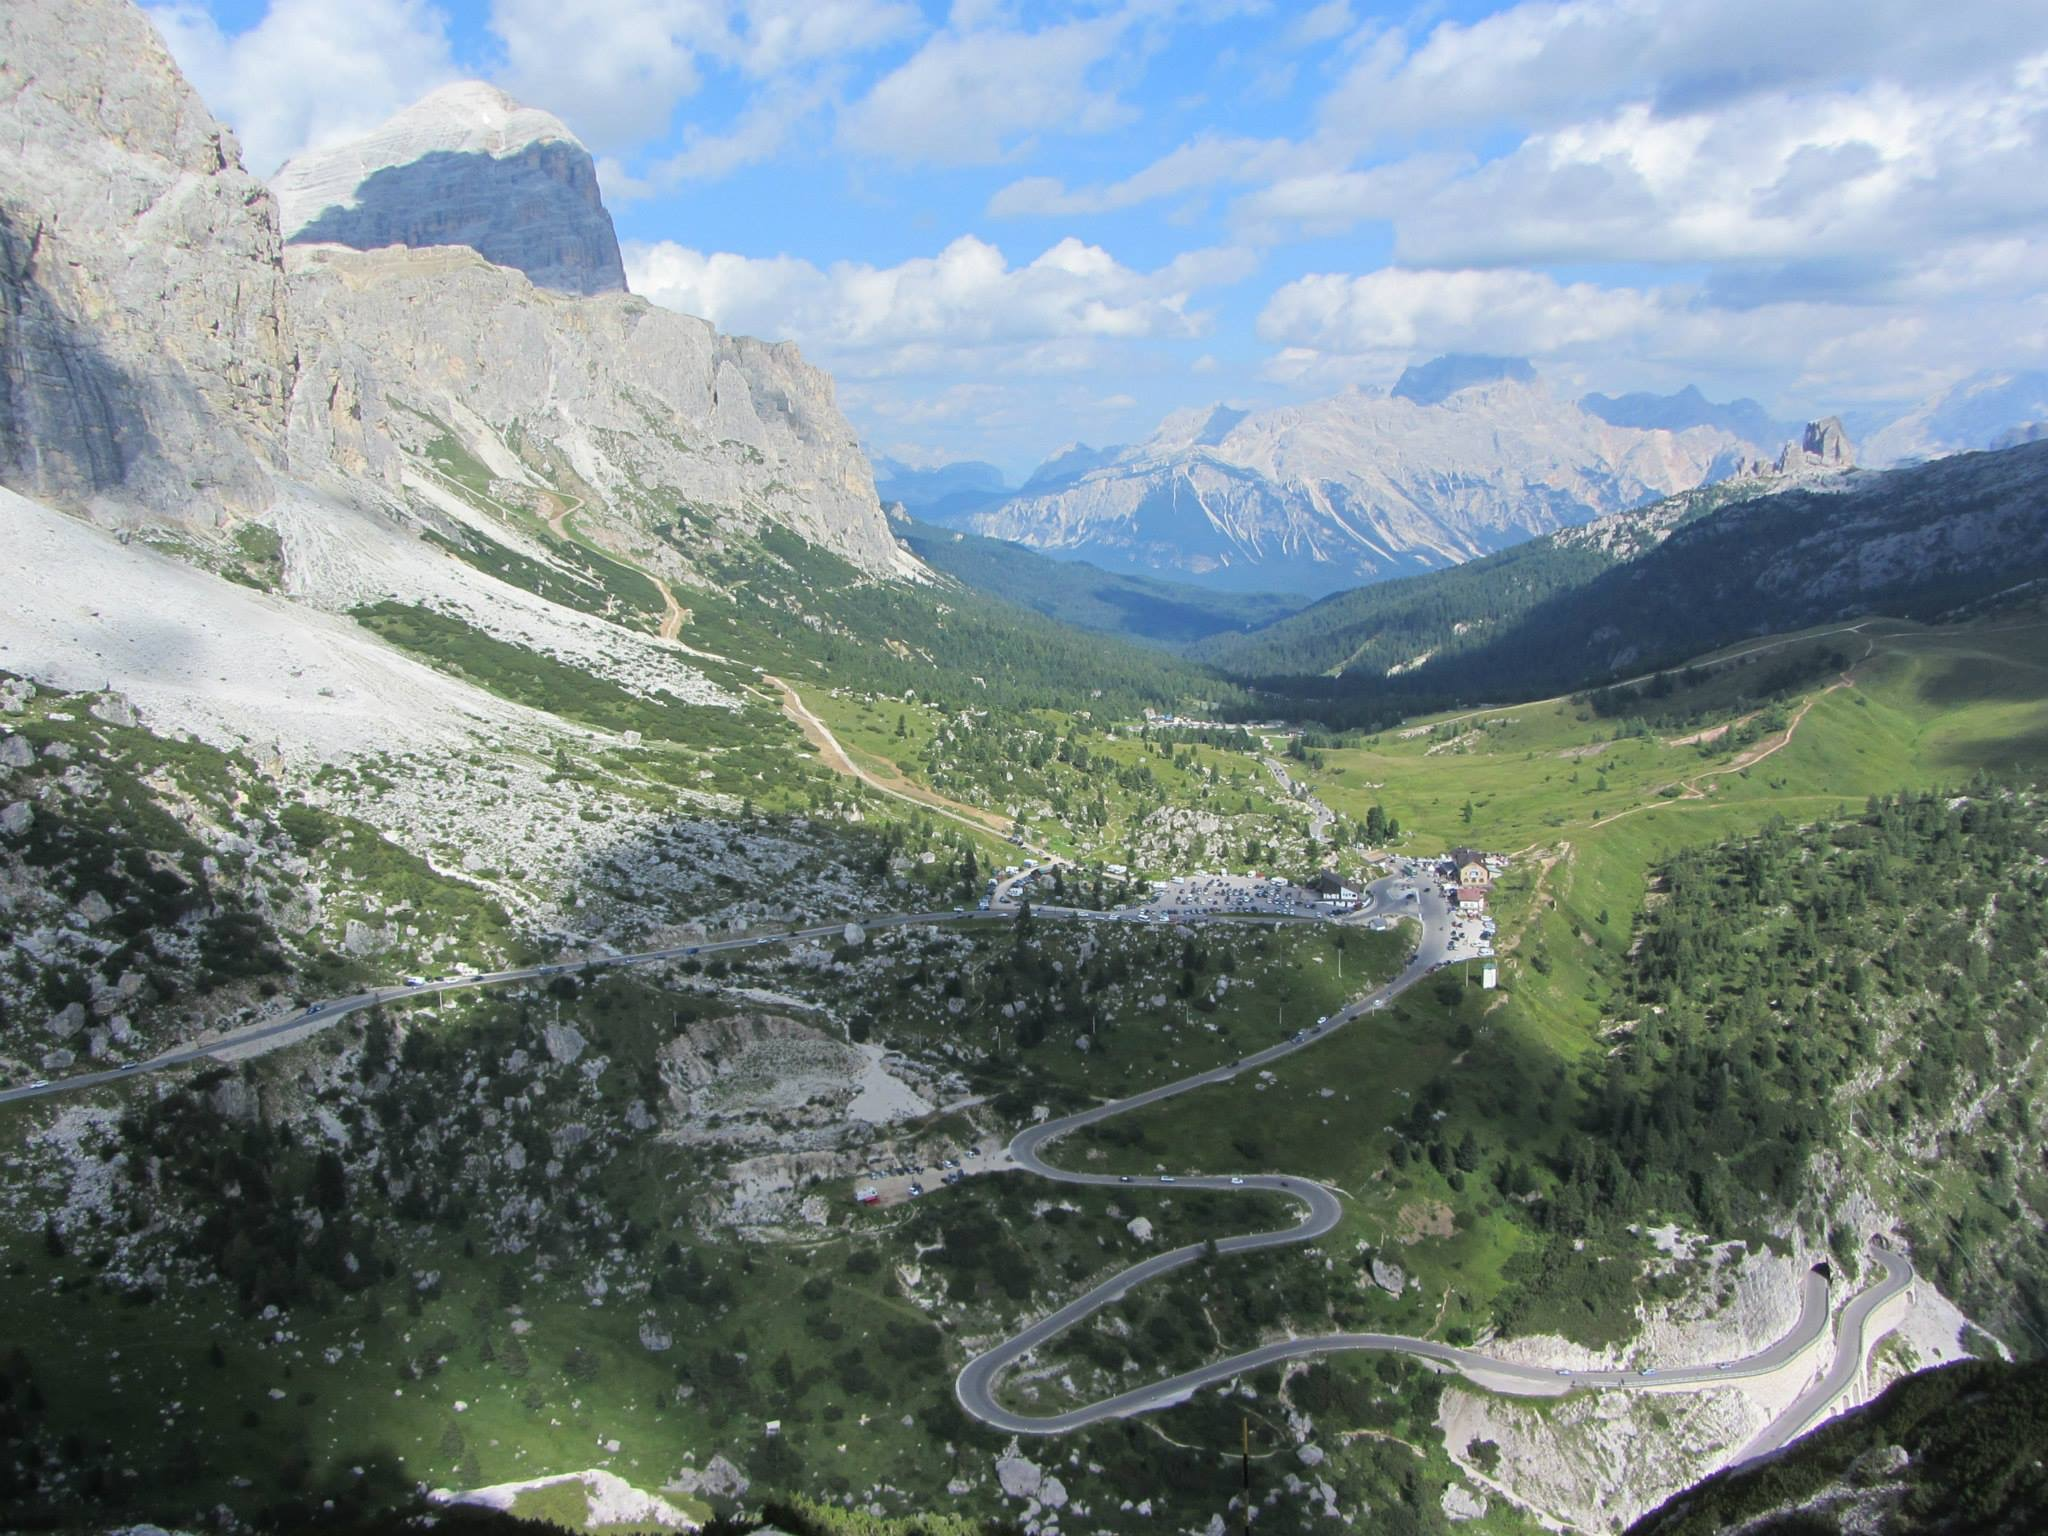 Looking out over Passo Falzarego towards Tofana di Rozes, Cinque Torri, and Averau.